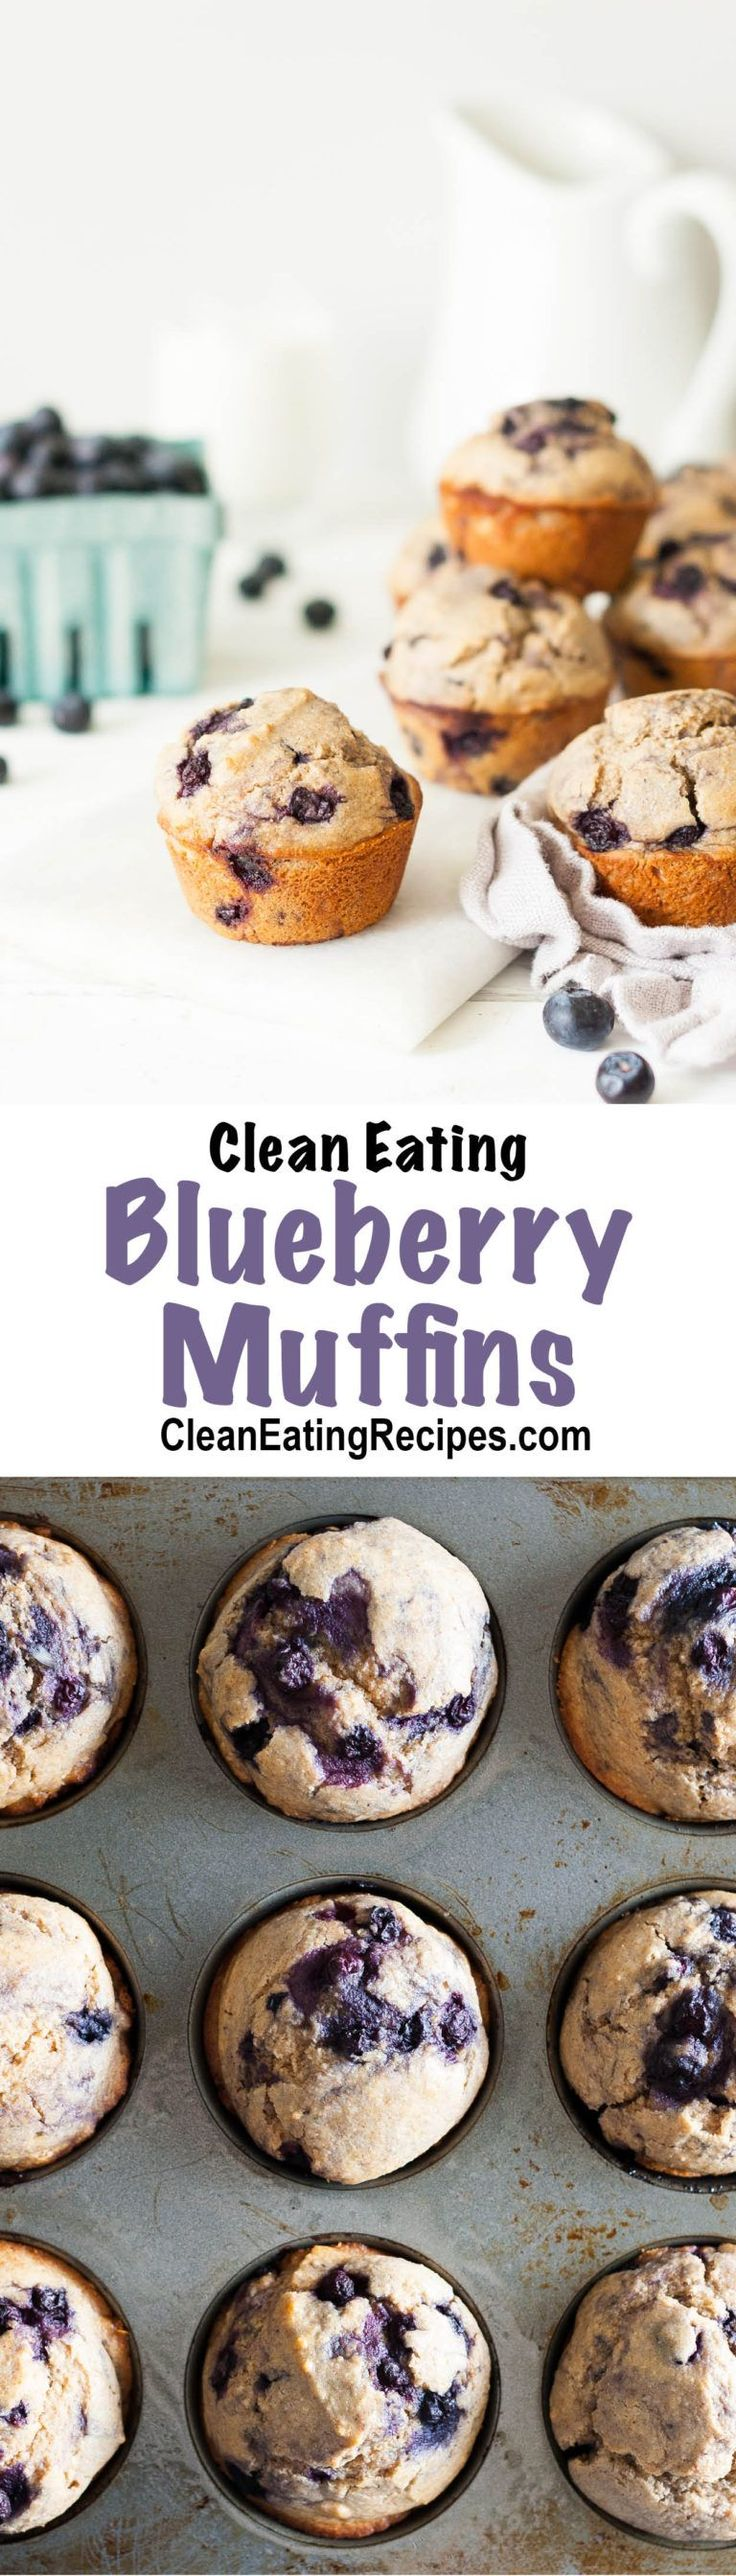 Clean Eating Blueberry Muffin Recipe